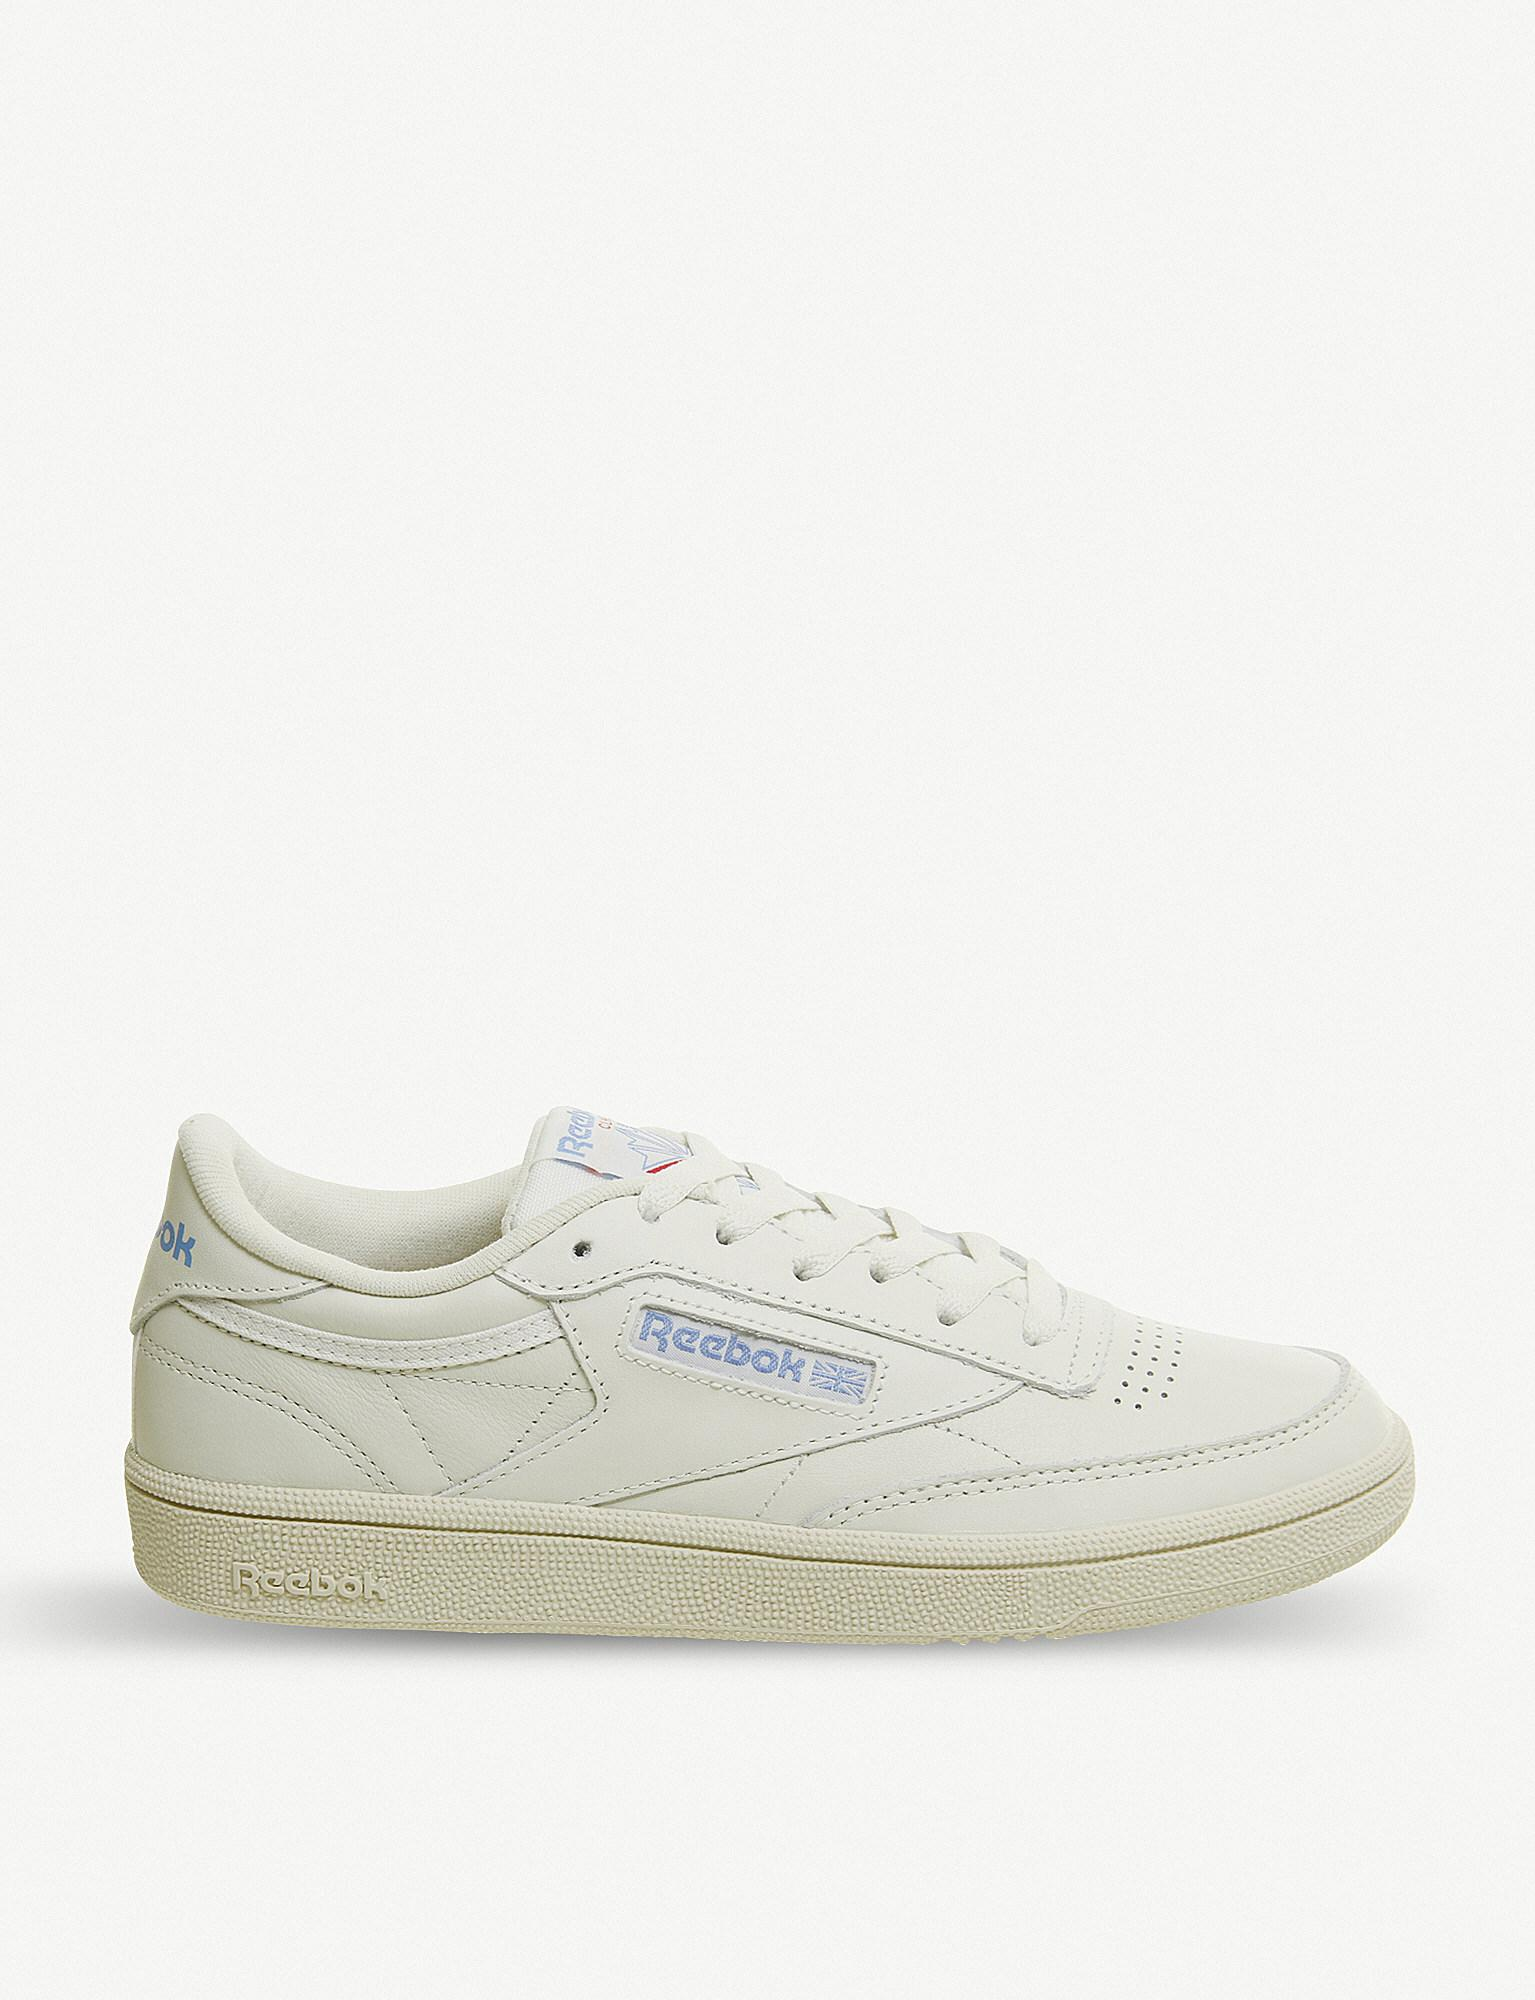 d5d251c48bb Reebok Club C 85 Leather Trainers in White - Lyst